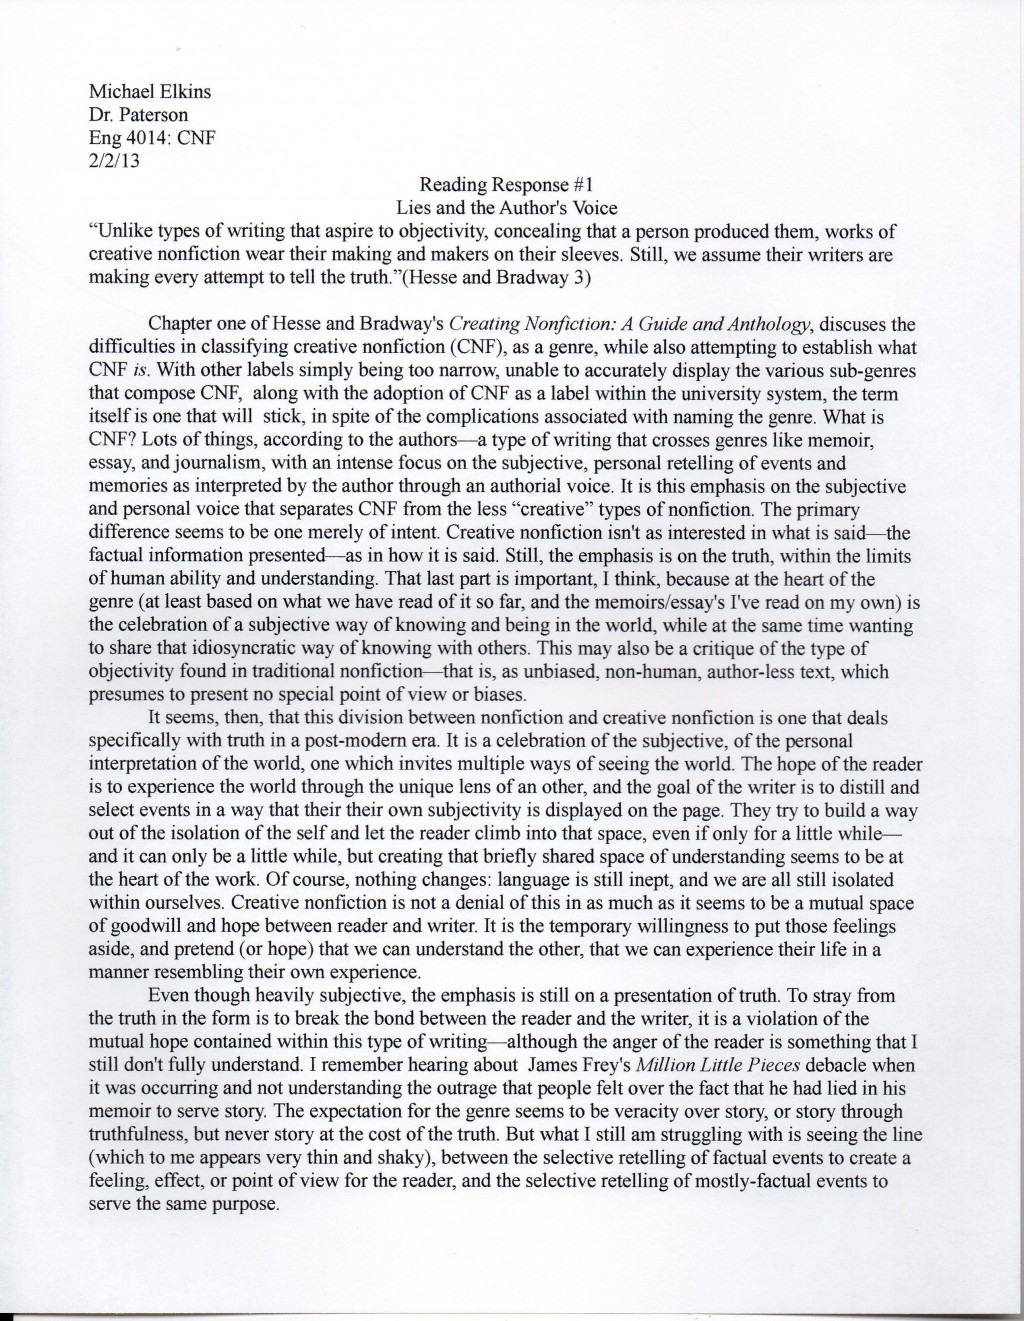 006 Img975 Reader Response Essay Amazing Assignment Examples On The Story Of An Hour Large